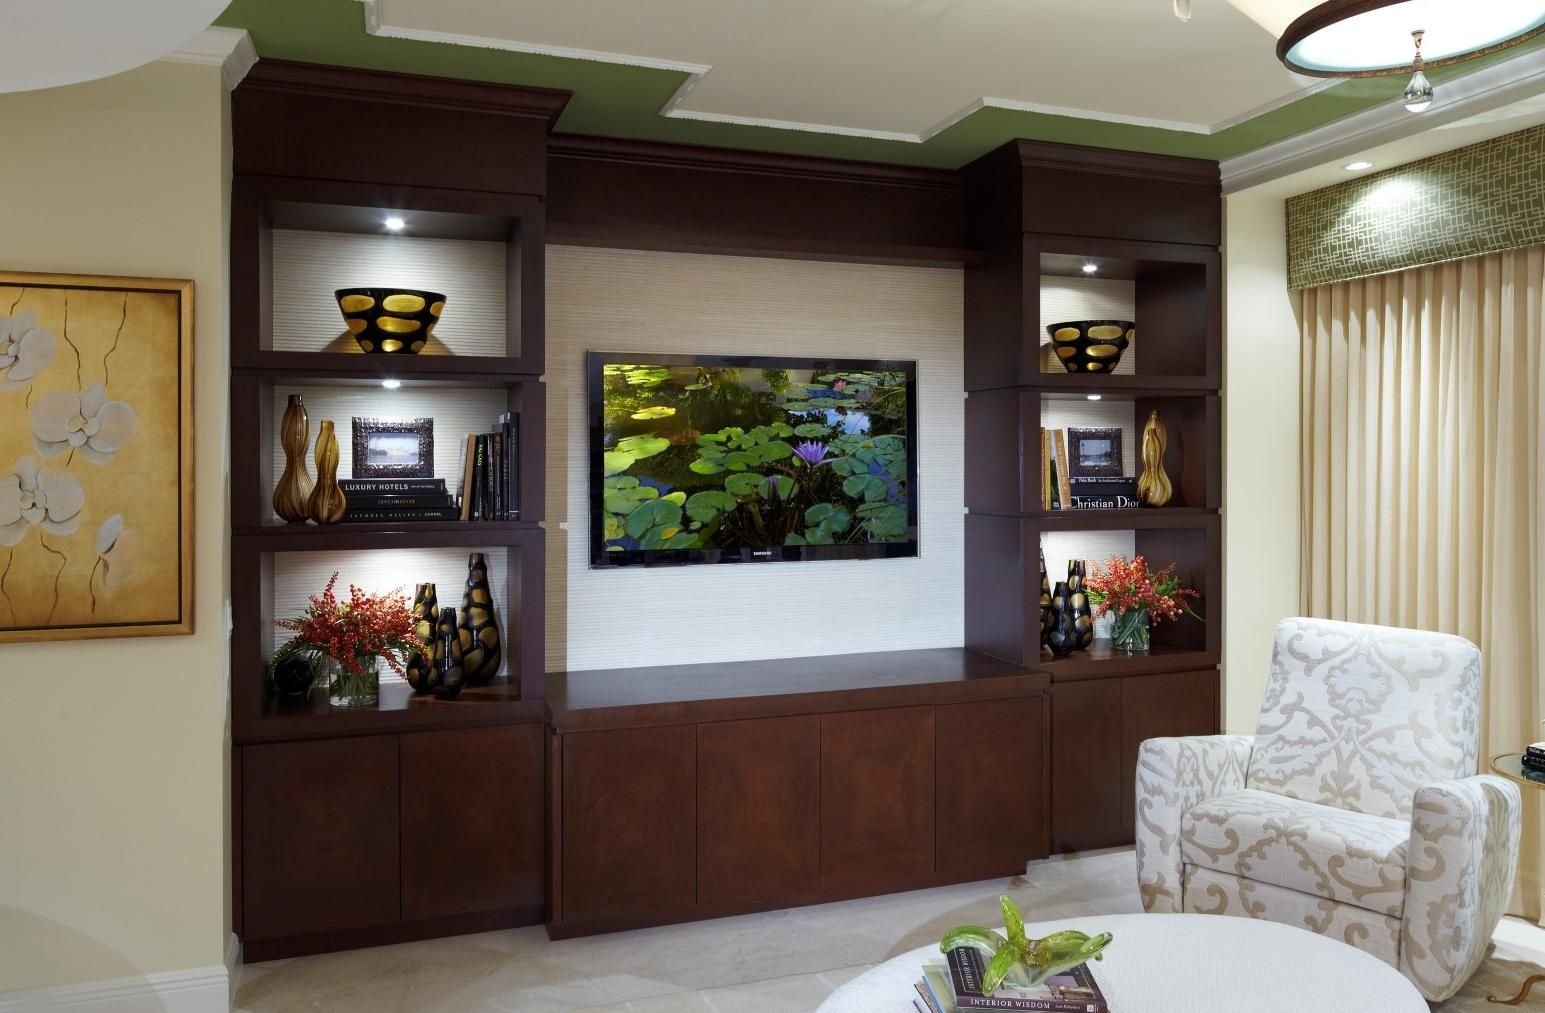 Living Room Entertainment Center Ideas living room entertainment center ideas - google search | ideas for